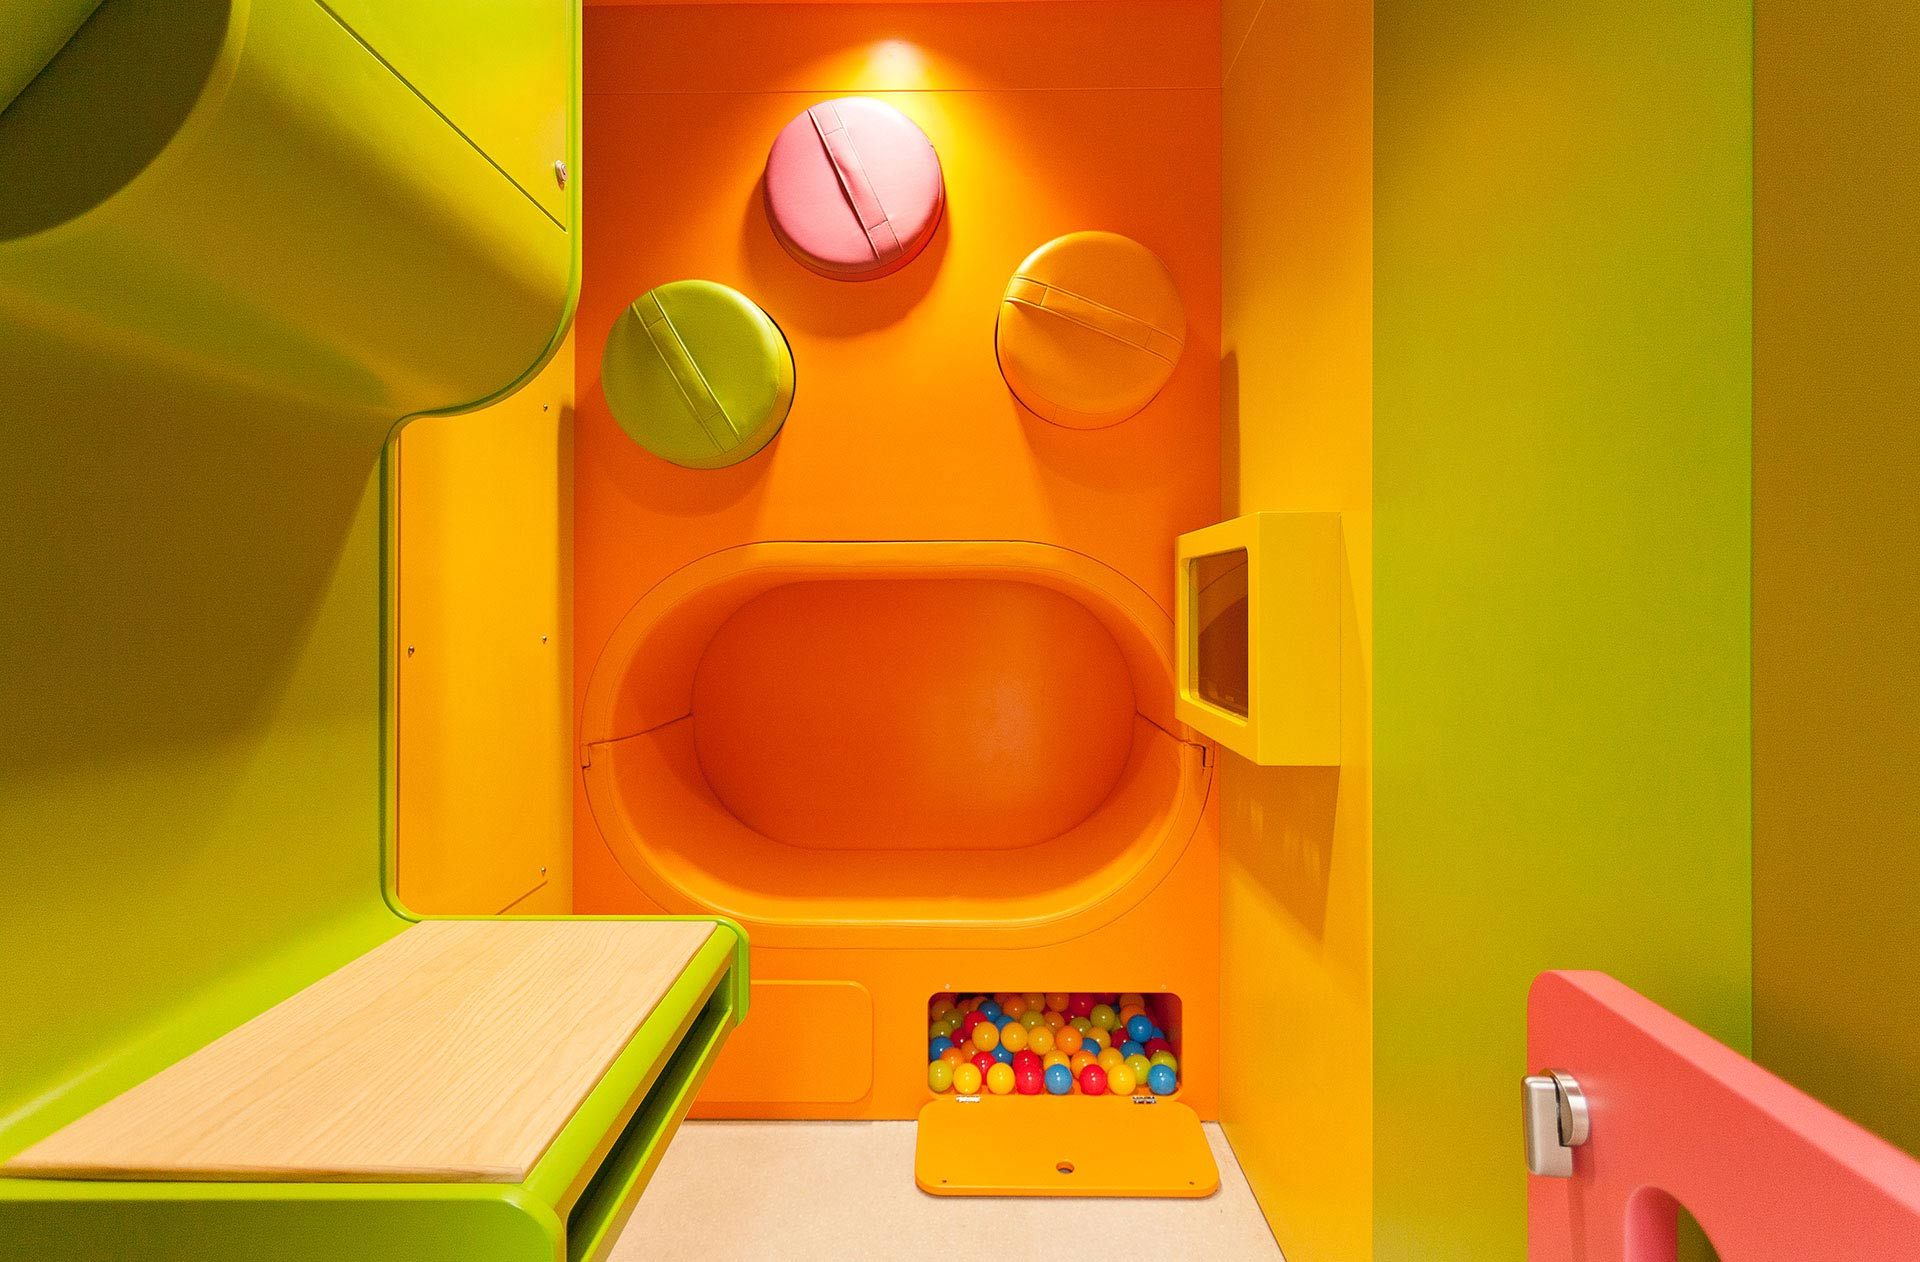 Smooth edges to allow safe play for children at Royal United Hospitals Bath